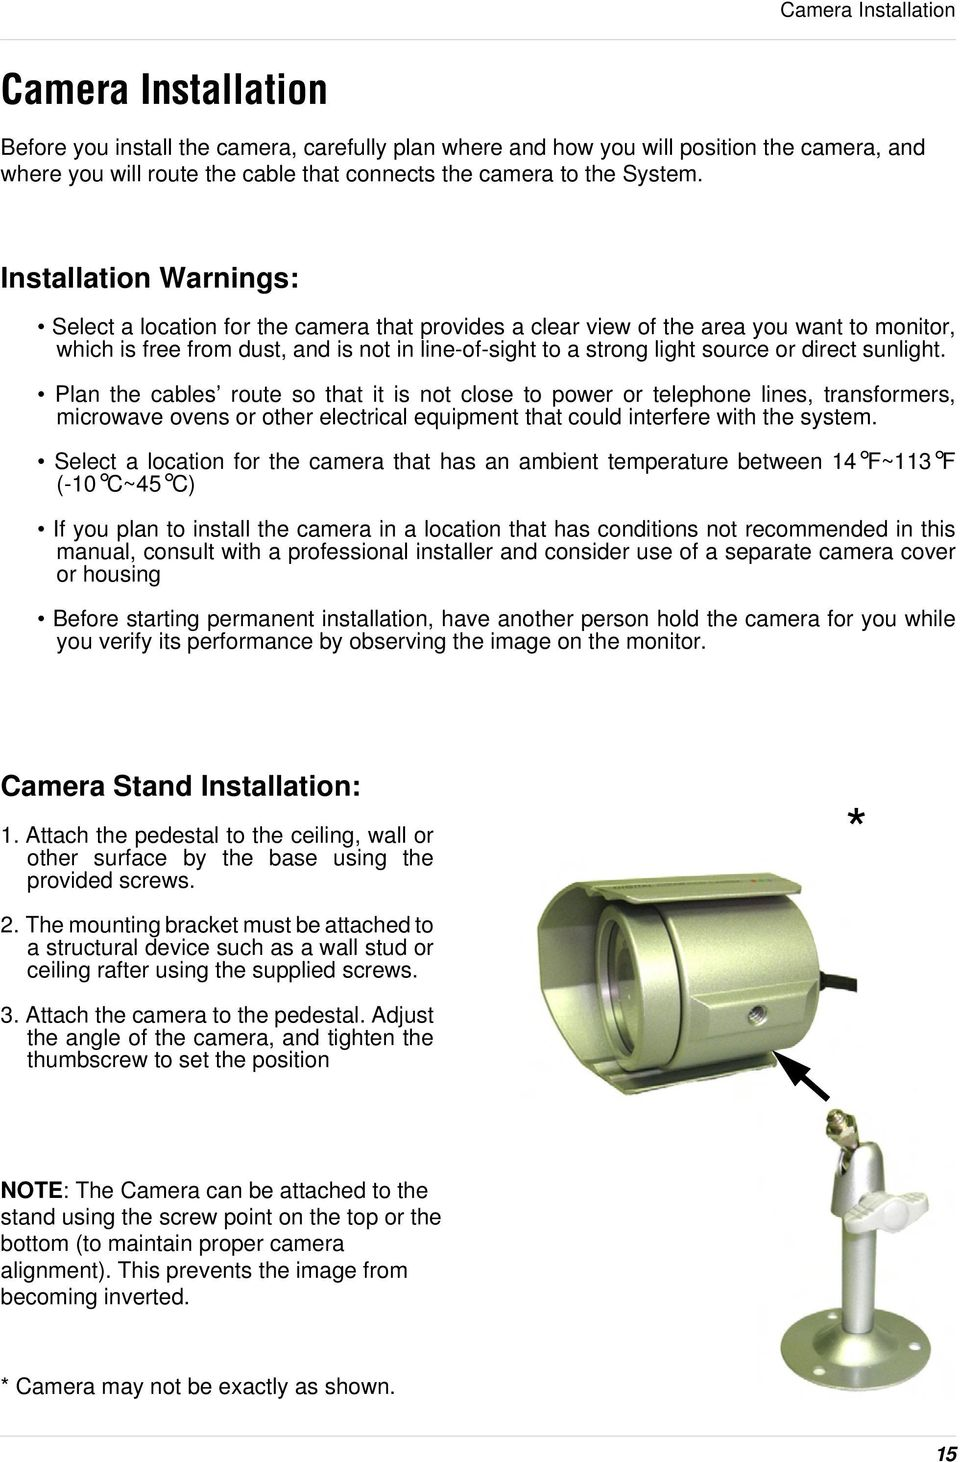 Installation Warnings: Select a location for the camera that provides a clear view of the area you want to monitor, which is free from dust, and is not in line-of-sight to a strong light source or